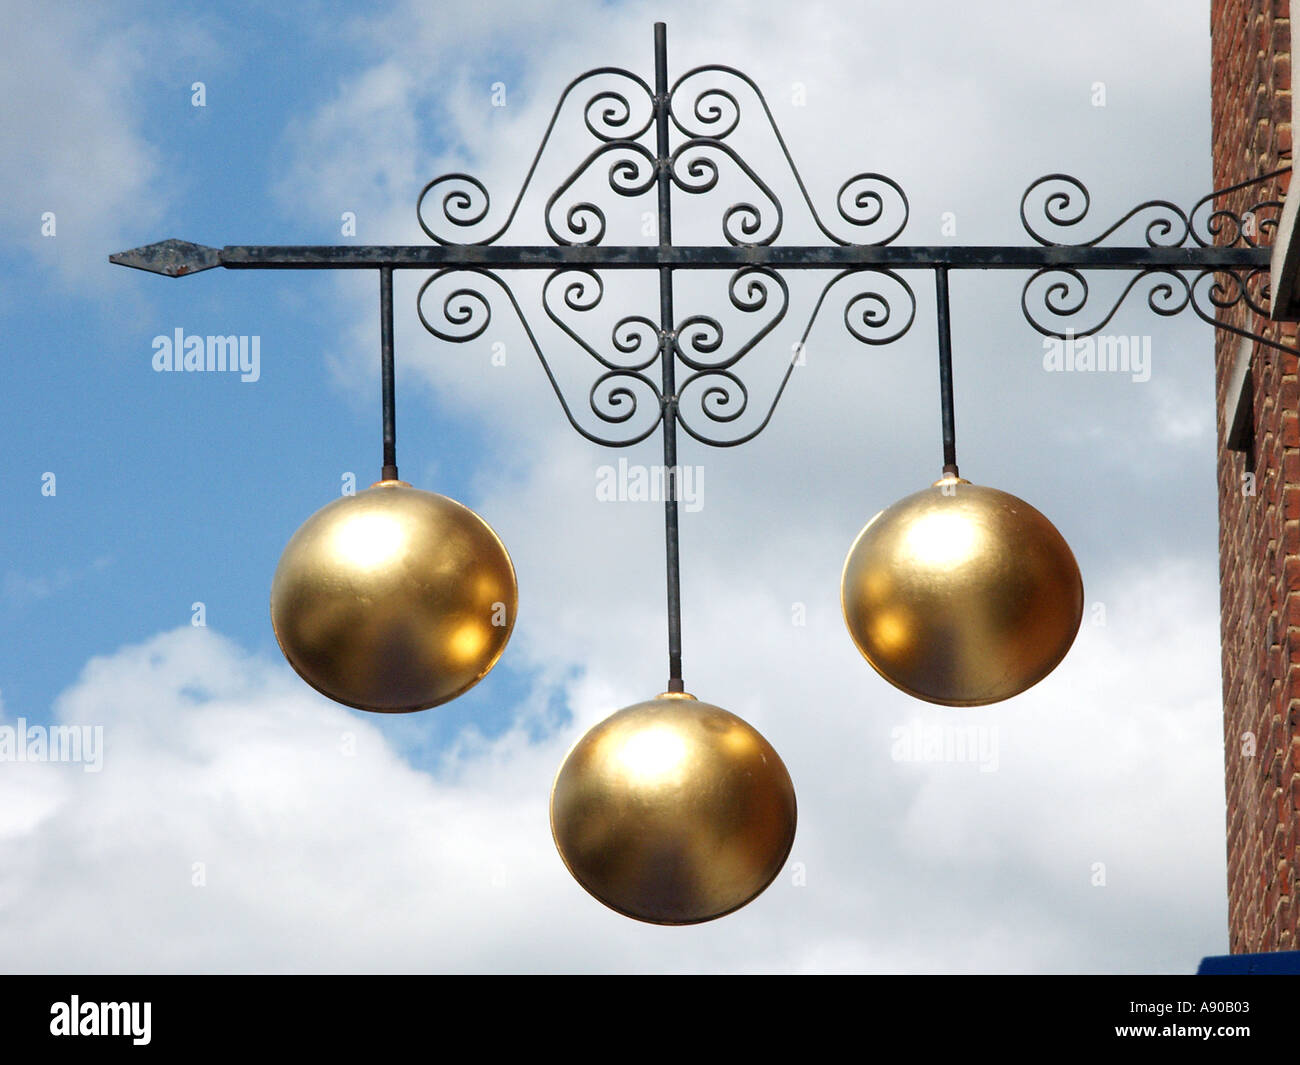 Pawn shop close up of traditional sign of three gold balls above Pawnbroker shop premises supported on ornamental iron bracket England UK - Stock Image